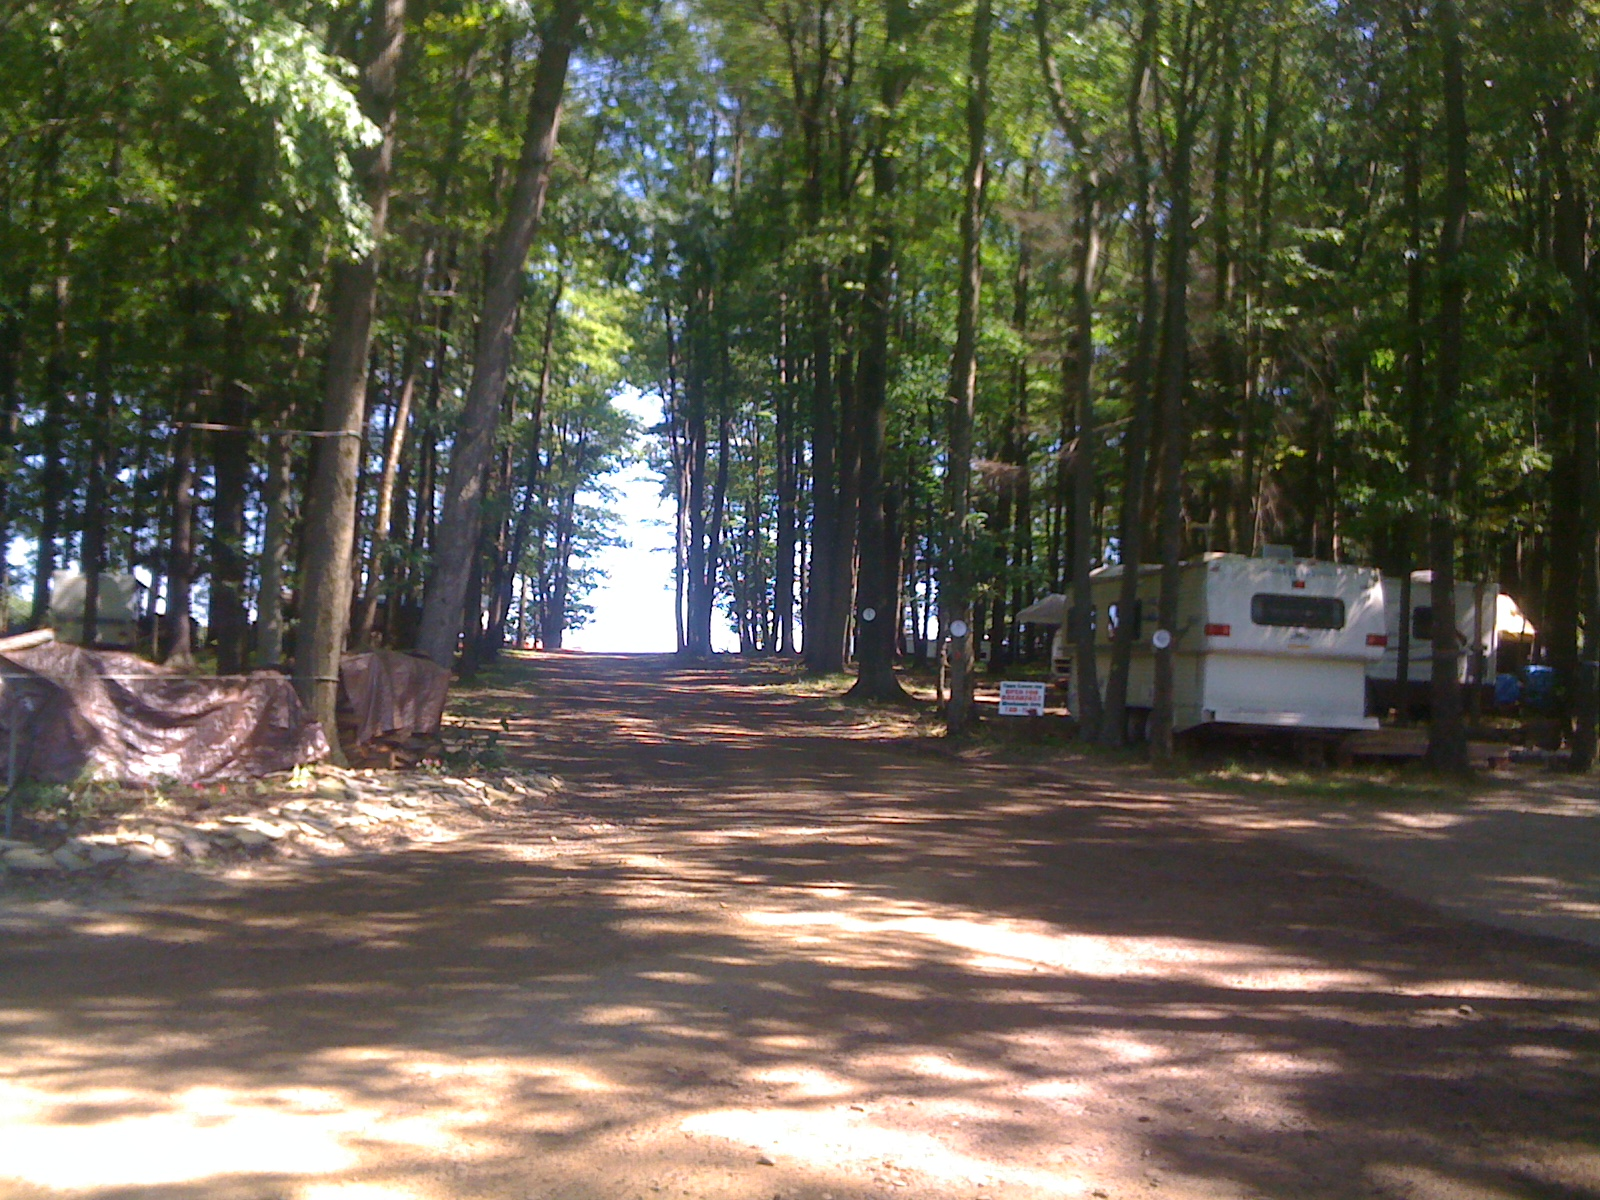 Entering Campground main driveway